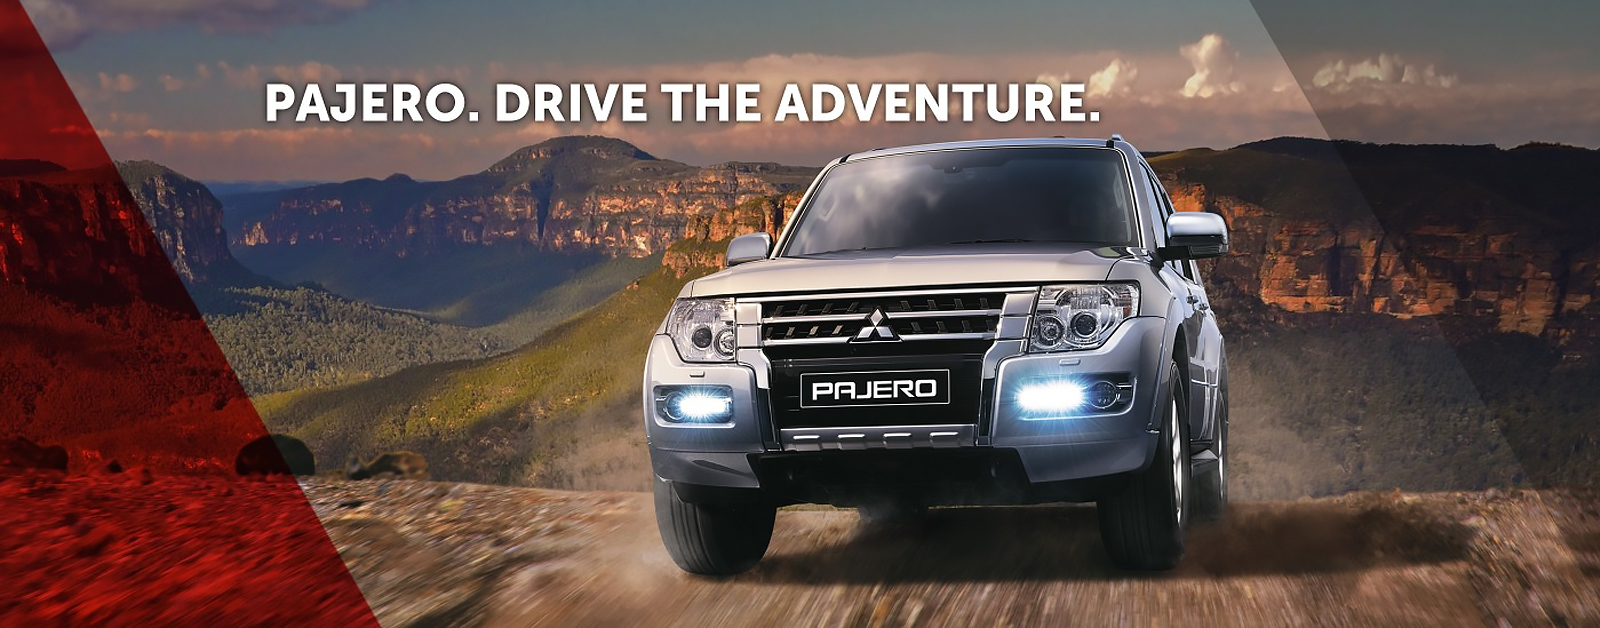 Explore off-road and hit the beach in the 2017 Mitsubishi Pajero 4x4. Drive the adventure at Redcliffe Mitsubishi Brisbane.